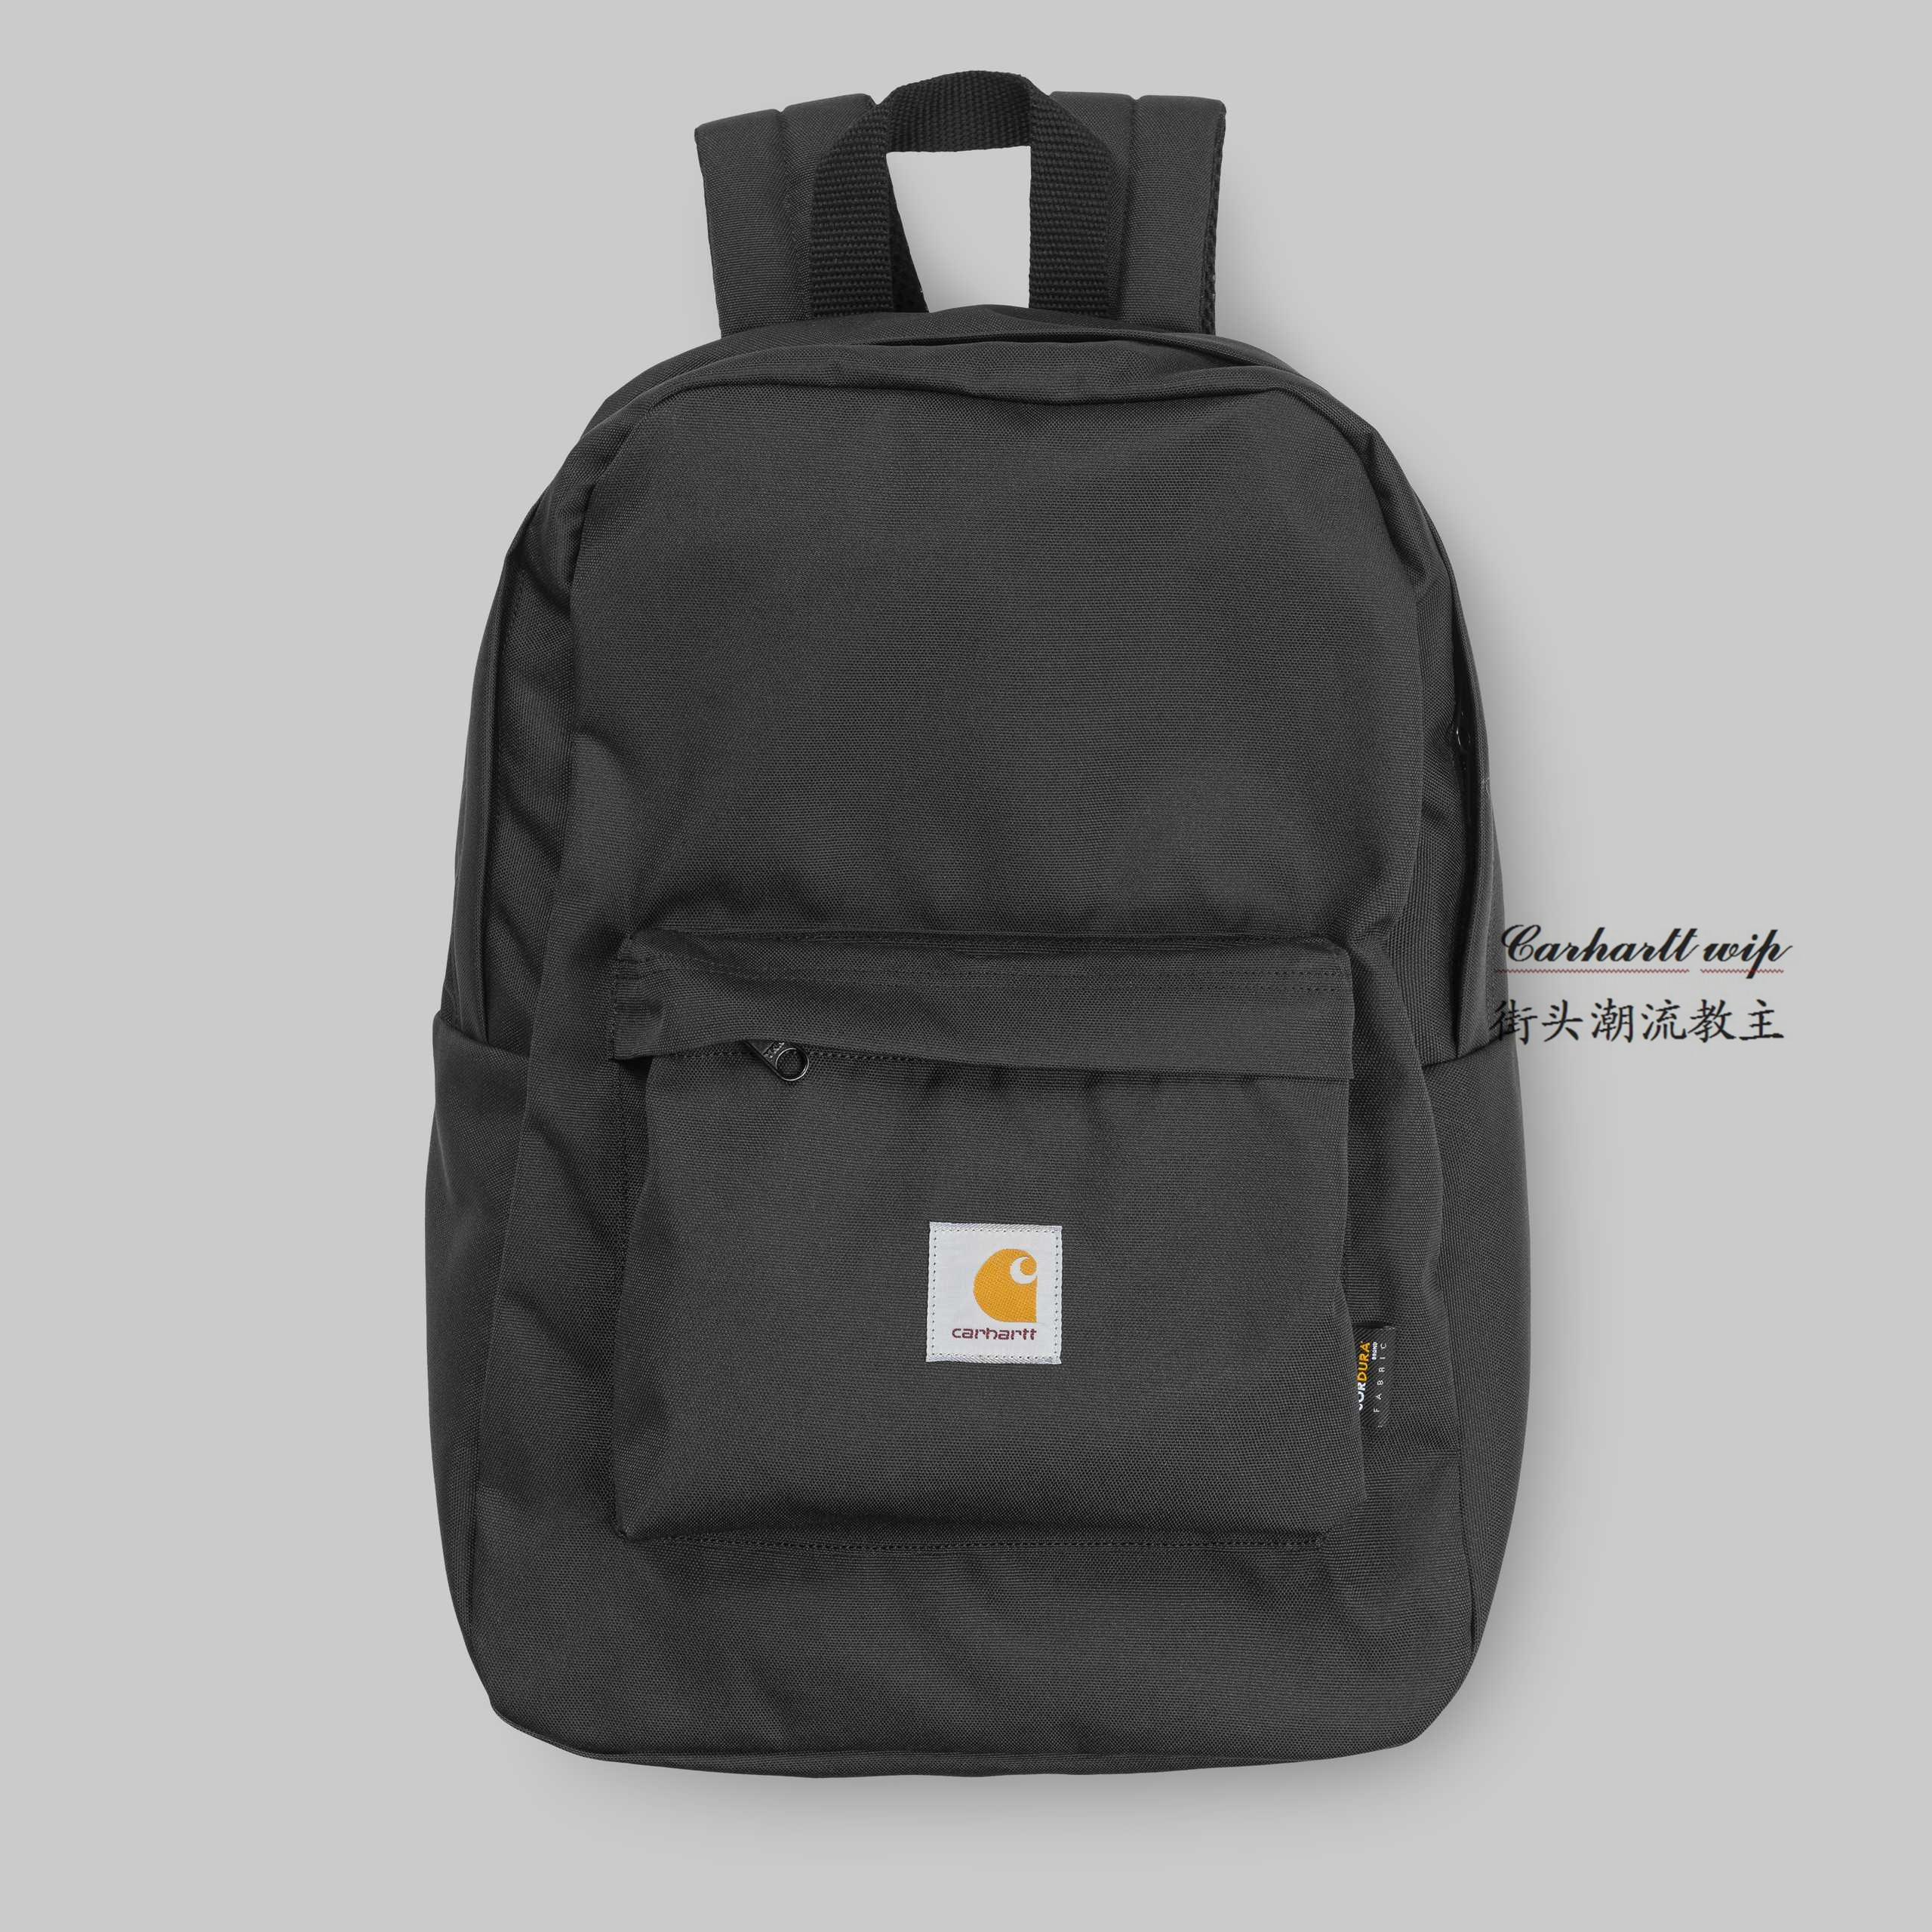 Spot Carhartt Wip Watch Backpack men and women Tide brand CANVAS leisure  mini backpack